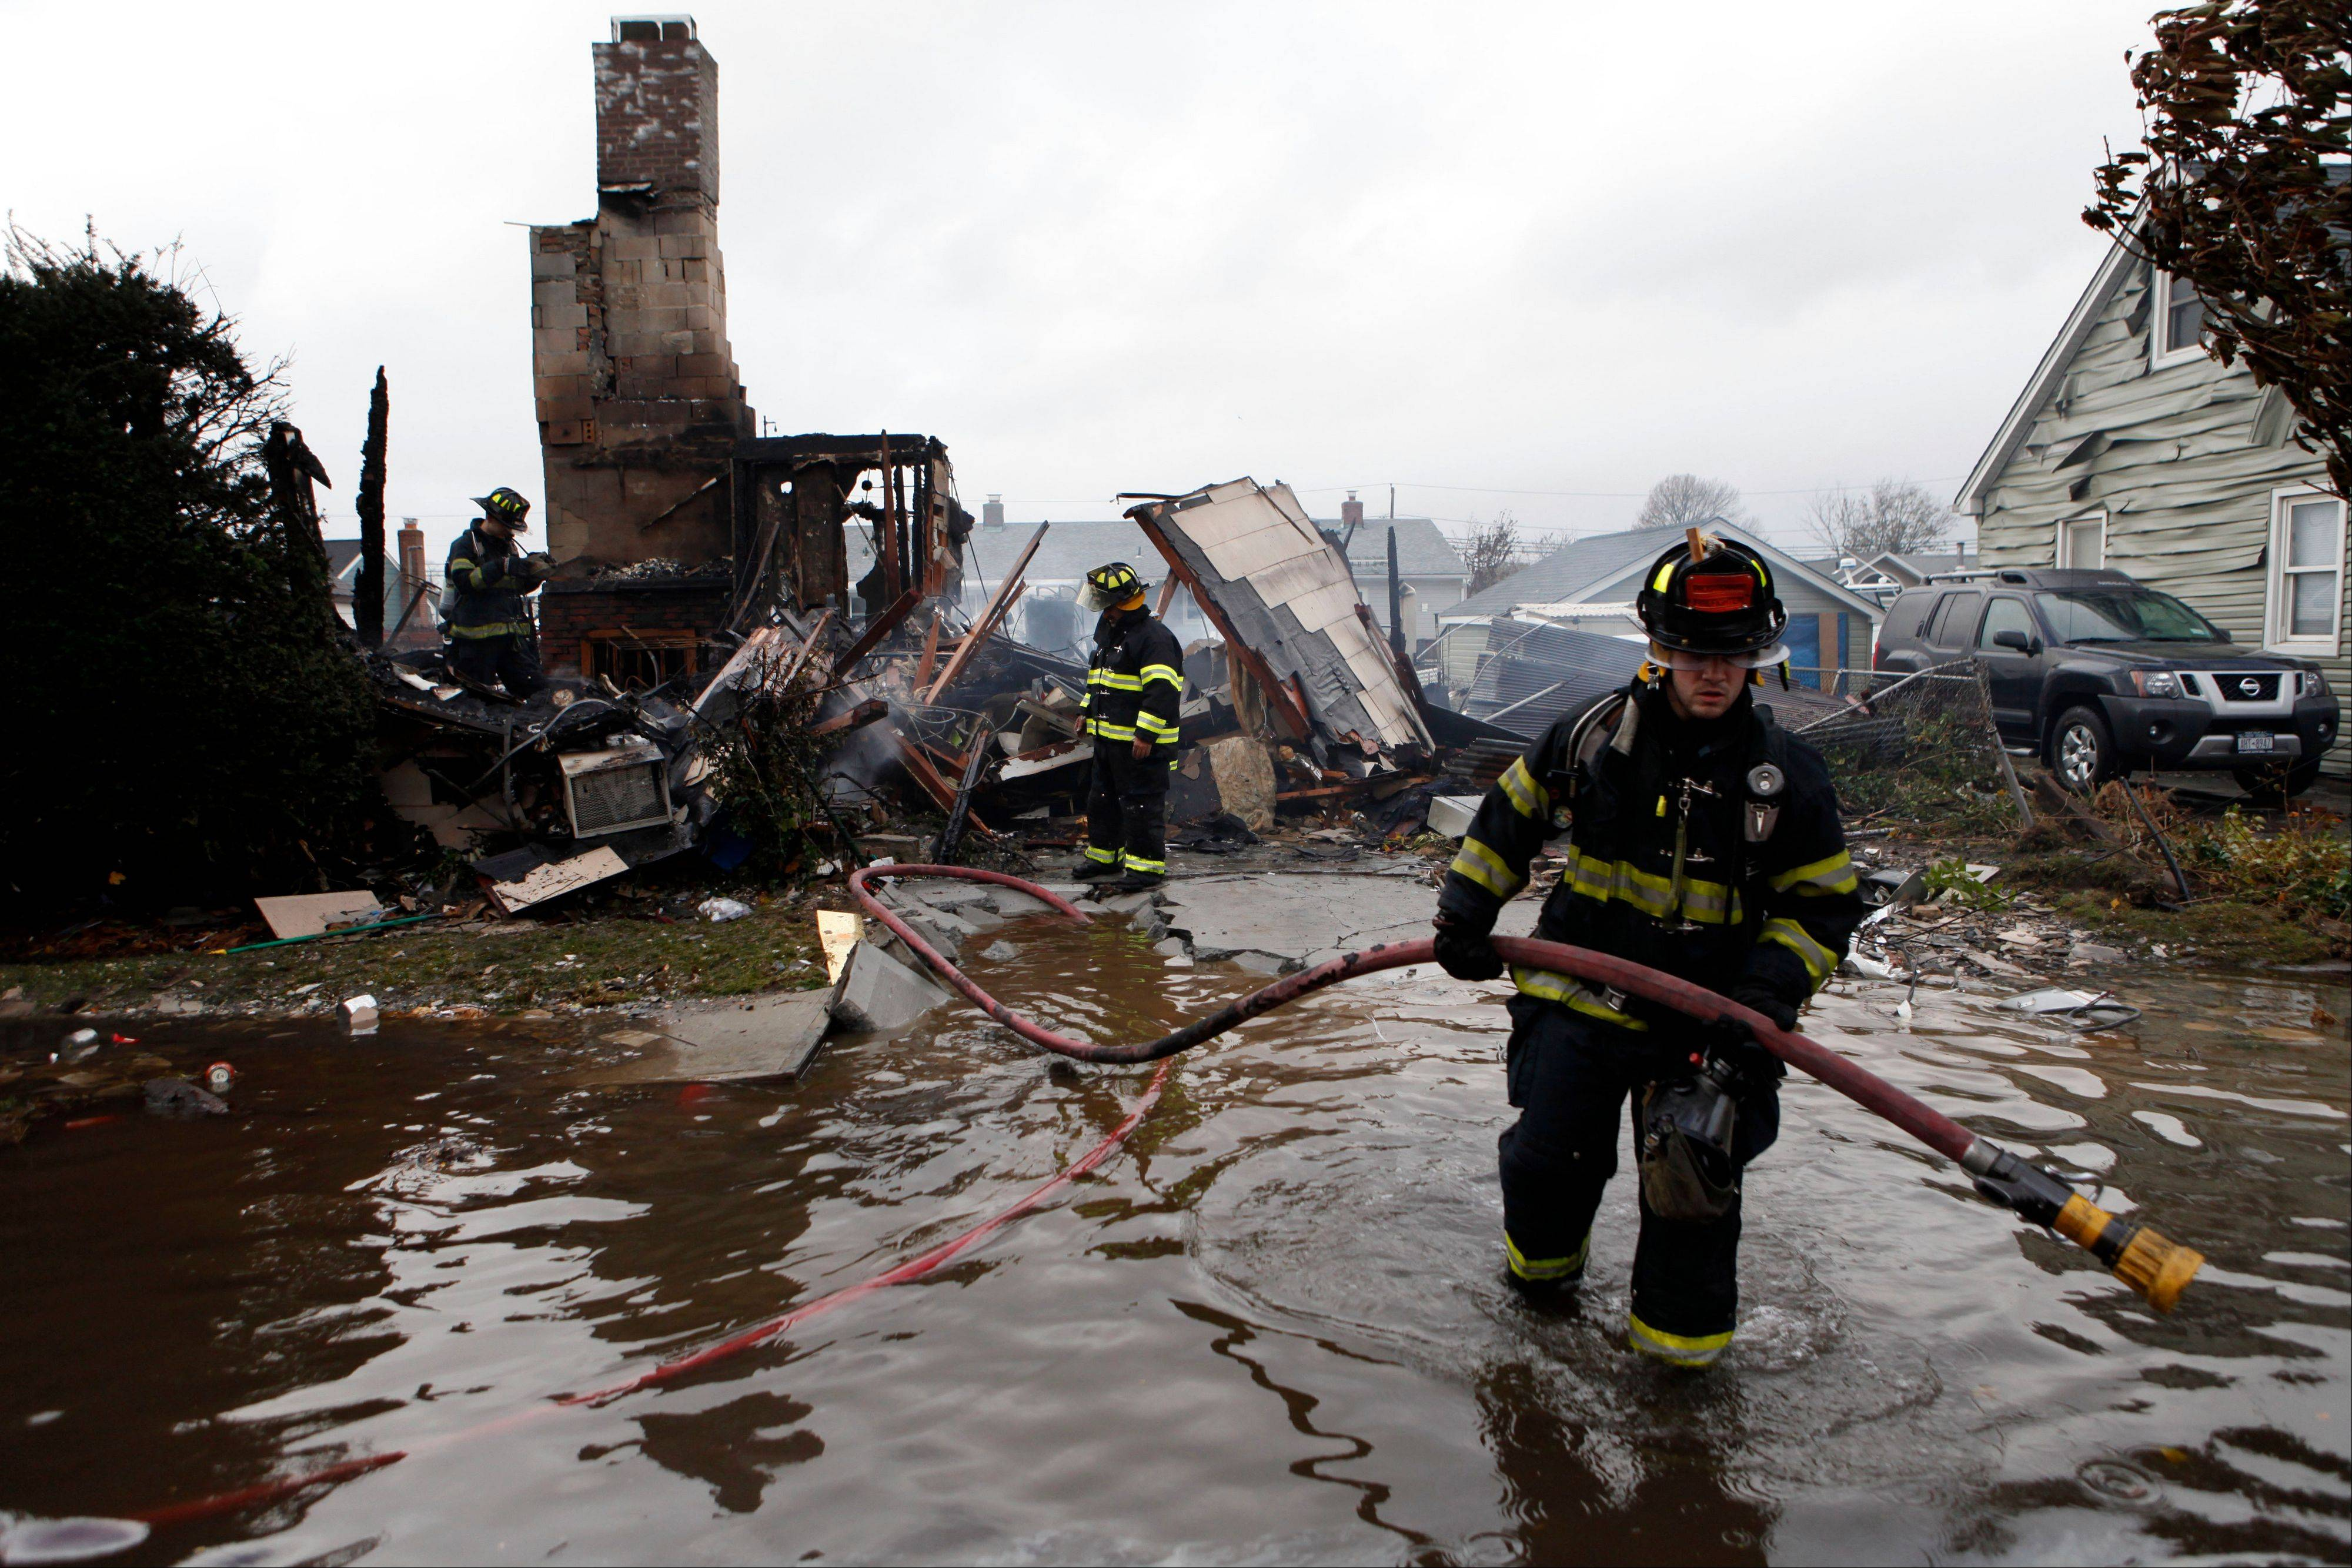 Firefighters work at the scene of a house fire in the aftermath of superstorm Sandy, Tuesday, Oct. 30, 2012, in Lindenhurst, N.Y. According to firefighters at the scene, four homes were destroyed by fire overnight in Lindenhurst, and six in Massapequa.